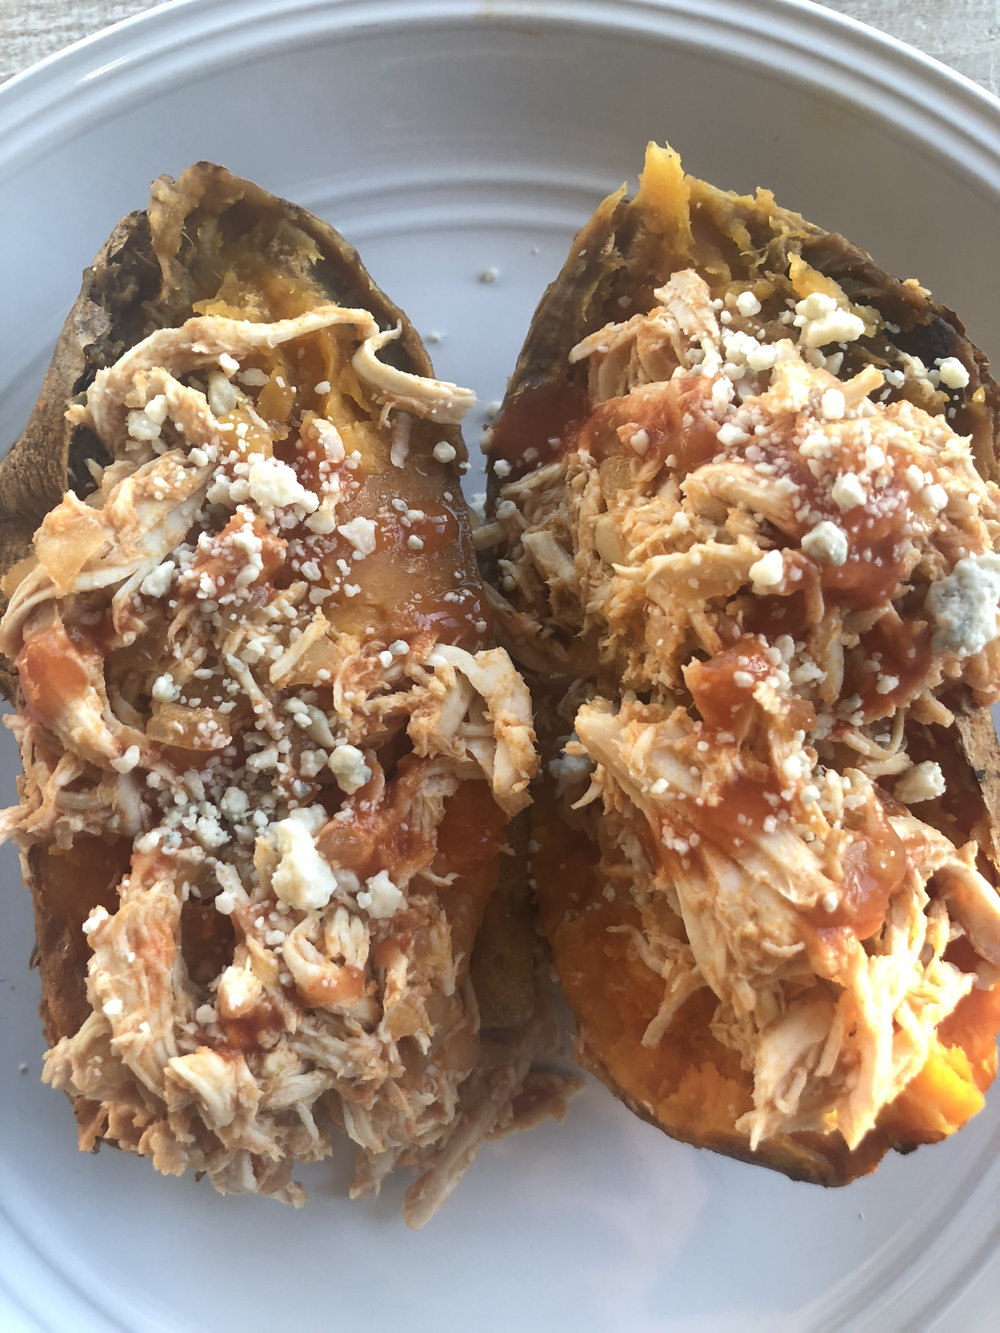 - Ingredients:3/4 C Hot Sauce (Franks)1 Tbsp & 1 tsp Coconut Oil1 1/2 lb Chicken Breast1/2 Medium Onion (Chopped)4 Small Sweet Potatoes (Scrubbed Clean)Sauce (Optional):Can eliminate and just top with Blue Cheese1/4 C Avocado Mayo or Plain Yogurt1 Tbsp Lime Juice1/4 tsp SaltDirections:1.) Melt 1 Tbsp Coconut Oil & mix with Buffalo Sauce2.) Add chicken to crockpot & drizzle with Buffalo Sauce mixture from step 1.3.) Melt 1 tsp coconut oil & rub or brush on skin of sweet potatoes.4.) Arrange sweet potatoes on top of chicken around edge of crockpot5.) Cover & cook on high for 4 hrs or low for 6 hrs or until chicken is cooked and potatoes are tender.6.) Sauce: Wisk together avocado mayo/yogurt, lime juice, salt (refrigerate until chicken and potatoes are done).7.) When cooked, remove potatoes from crockpot. Use tongs or gloves and be careful as potatoes will be hot and tender.8.) Remove chicken and shred.9.) Add shredded chicken back to pot, add remaining 1/4 C hot sauce and combine.10.) Slice sweet potatoes, top with shredded chicken, drizzle with hot sauce mixture in pot, top with sauce or top with blue cheese.